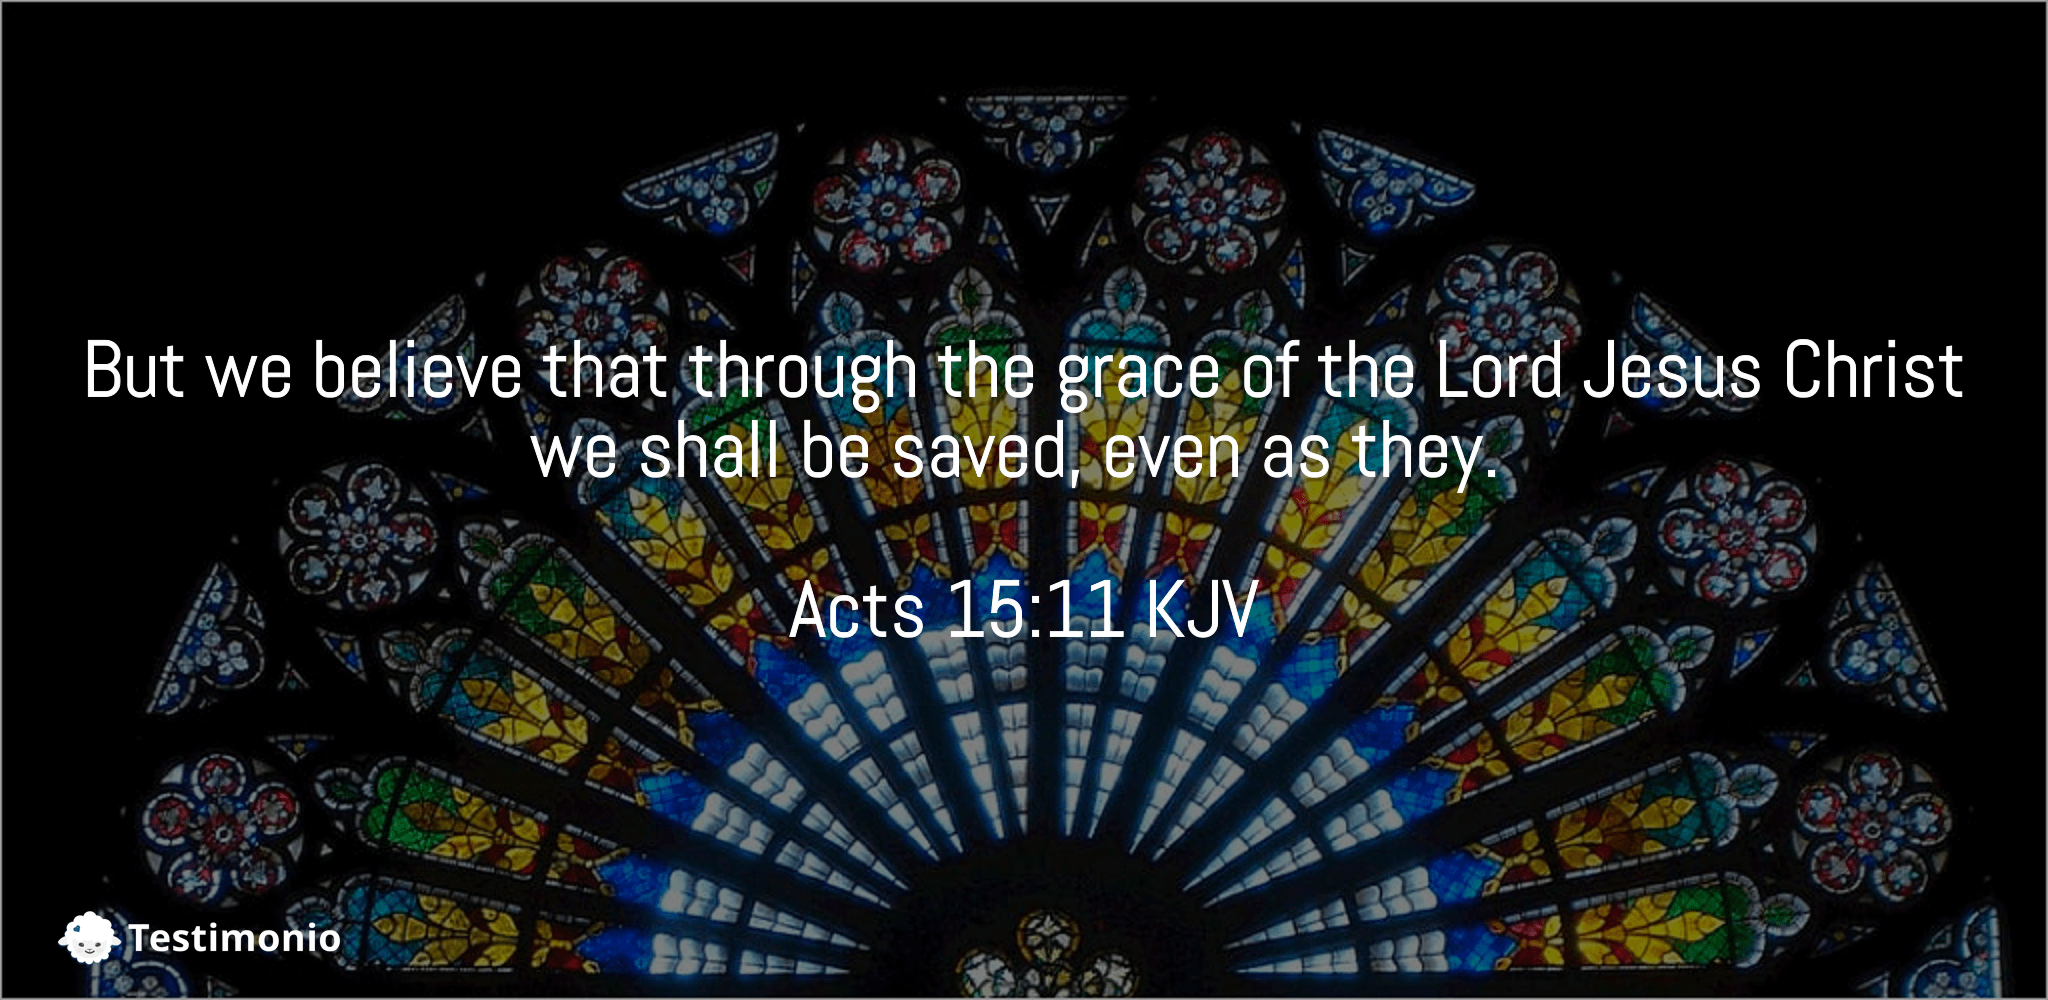 Acts 15:11